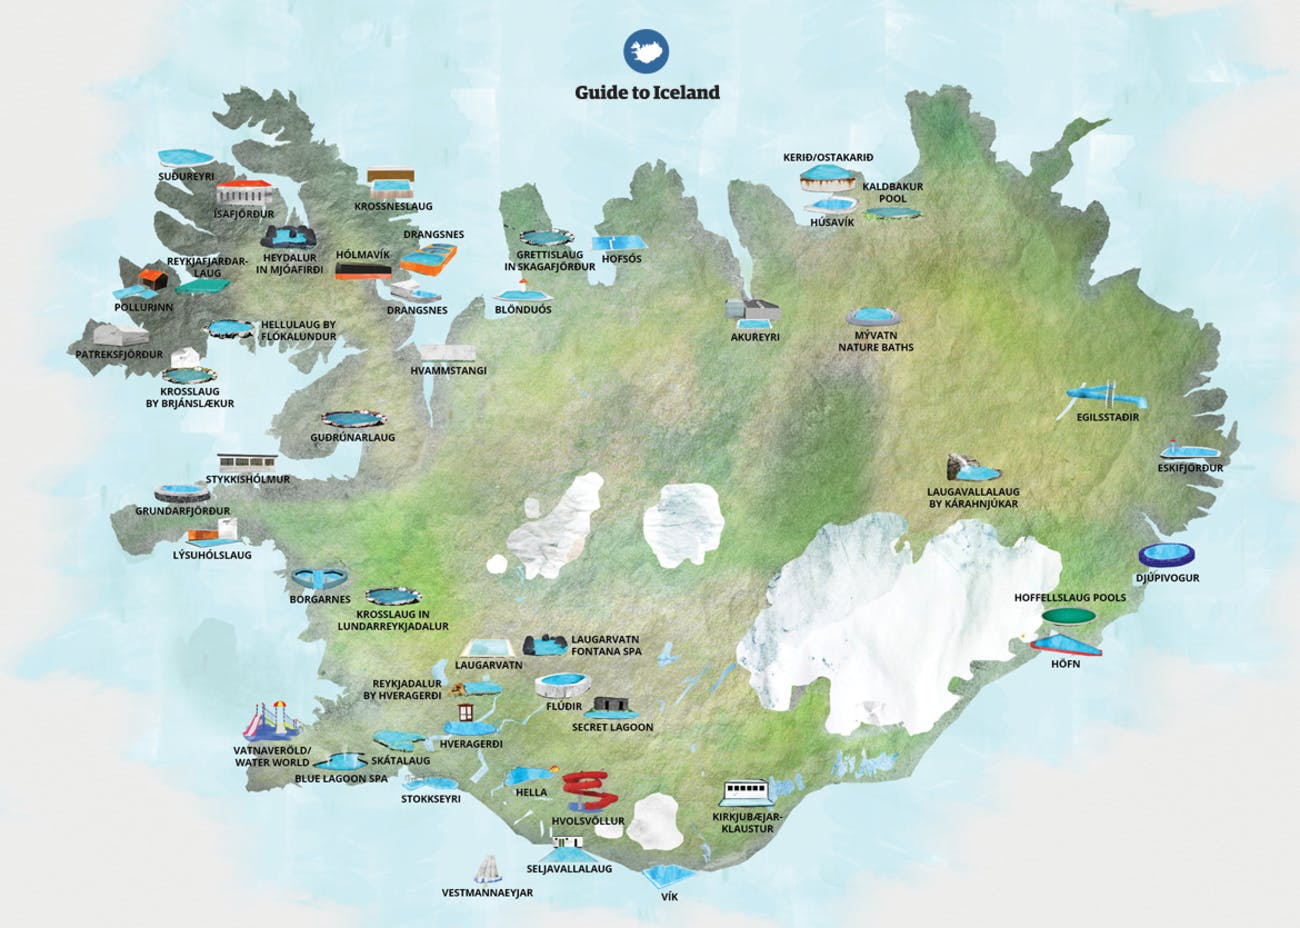 Maps of Iceland | Guide to Iceland Iceland Attractions Map on australia attractions map, iceland attractions and monuments, iceland shopping, iceland points of interest maps, venezuela attractions map, iceland information, st. kitts attractions map, world attractions map, dominica attractions map, reykjavik tourist map, italy attractions map, jordan attractions map, myanmar attractions map, egypt attractions map, myrtle beach south carolina attractions map, switzerland attractions map, belgium attractions map, mongolia attractions map, iceland tourist attractions, azerbaijan attractions map,